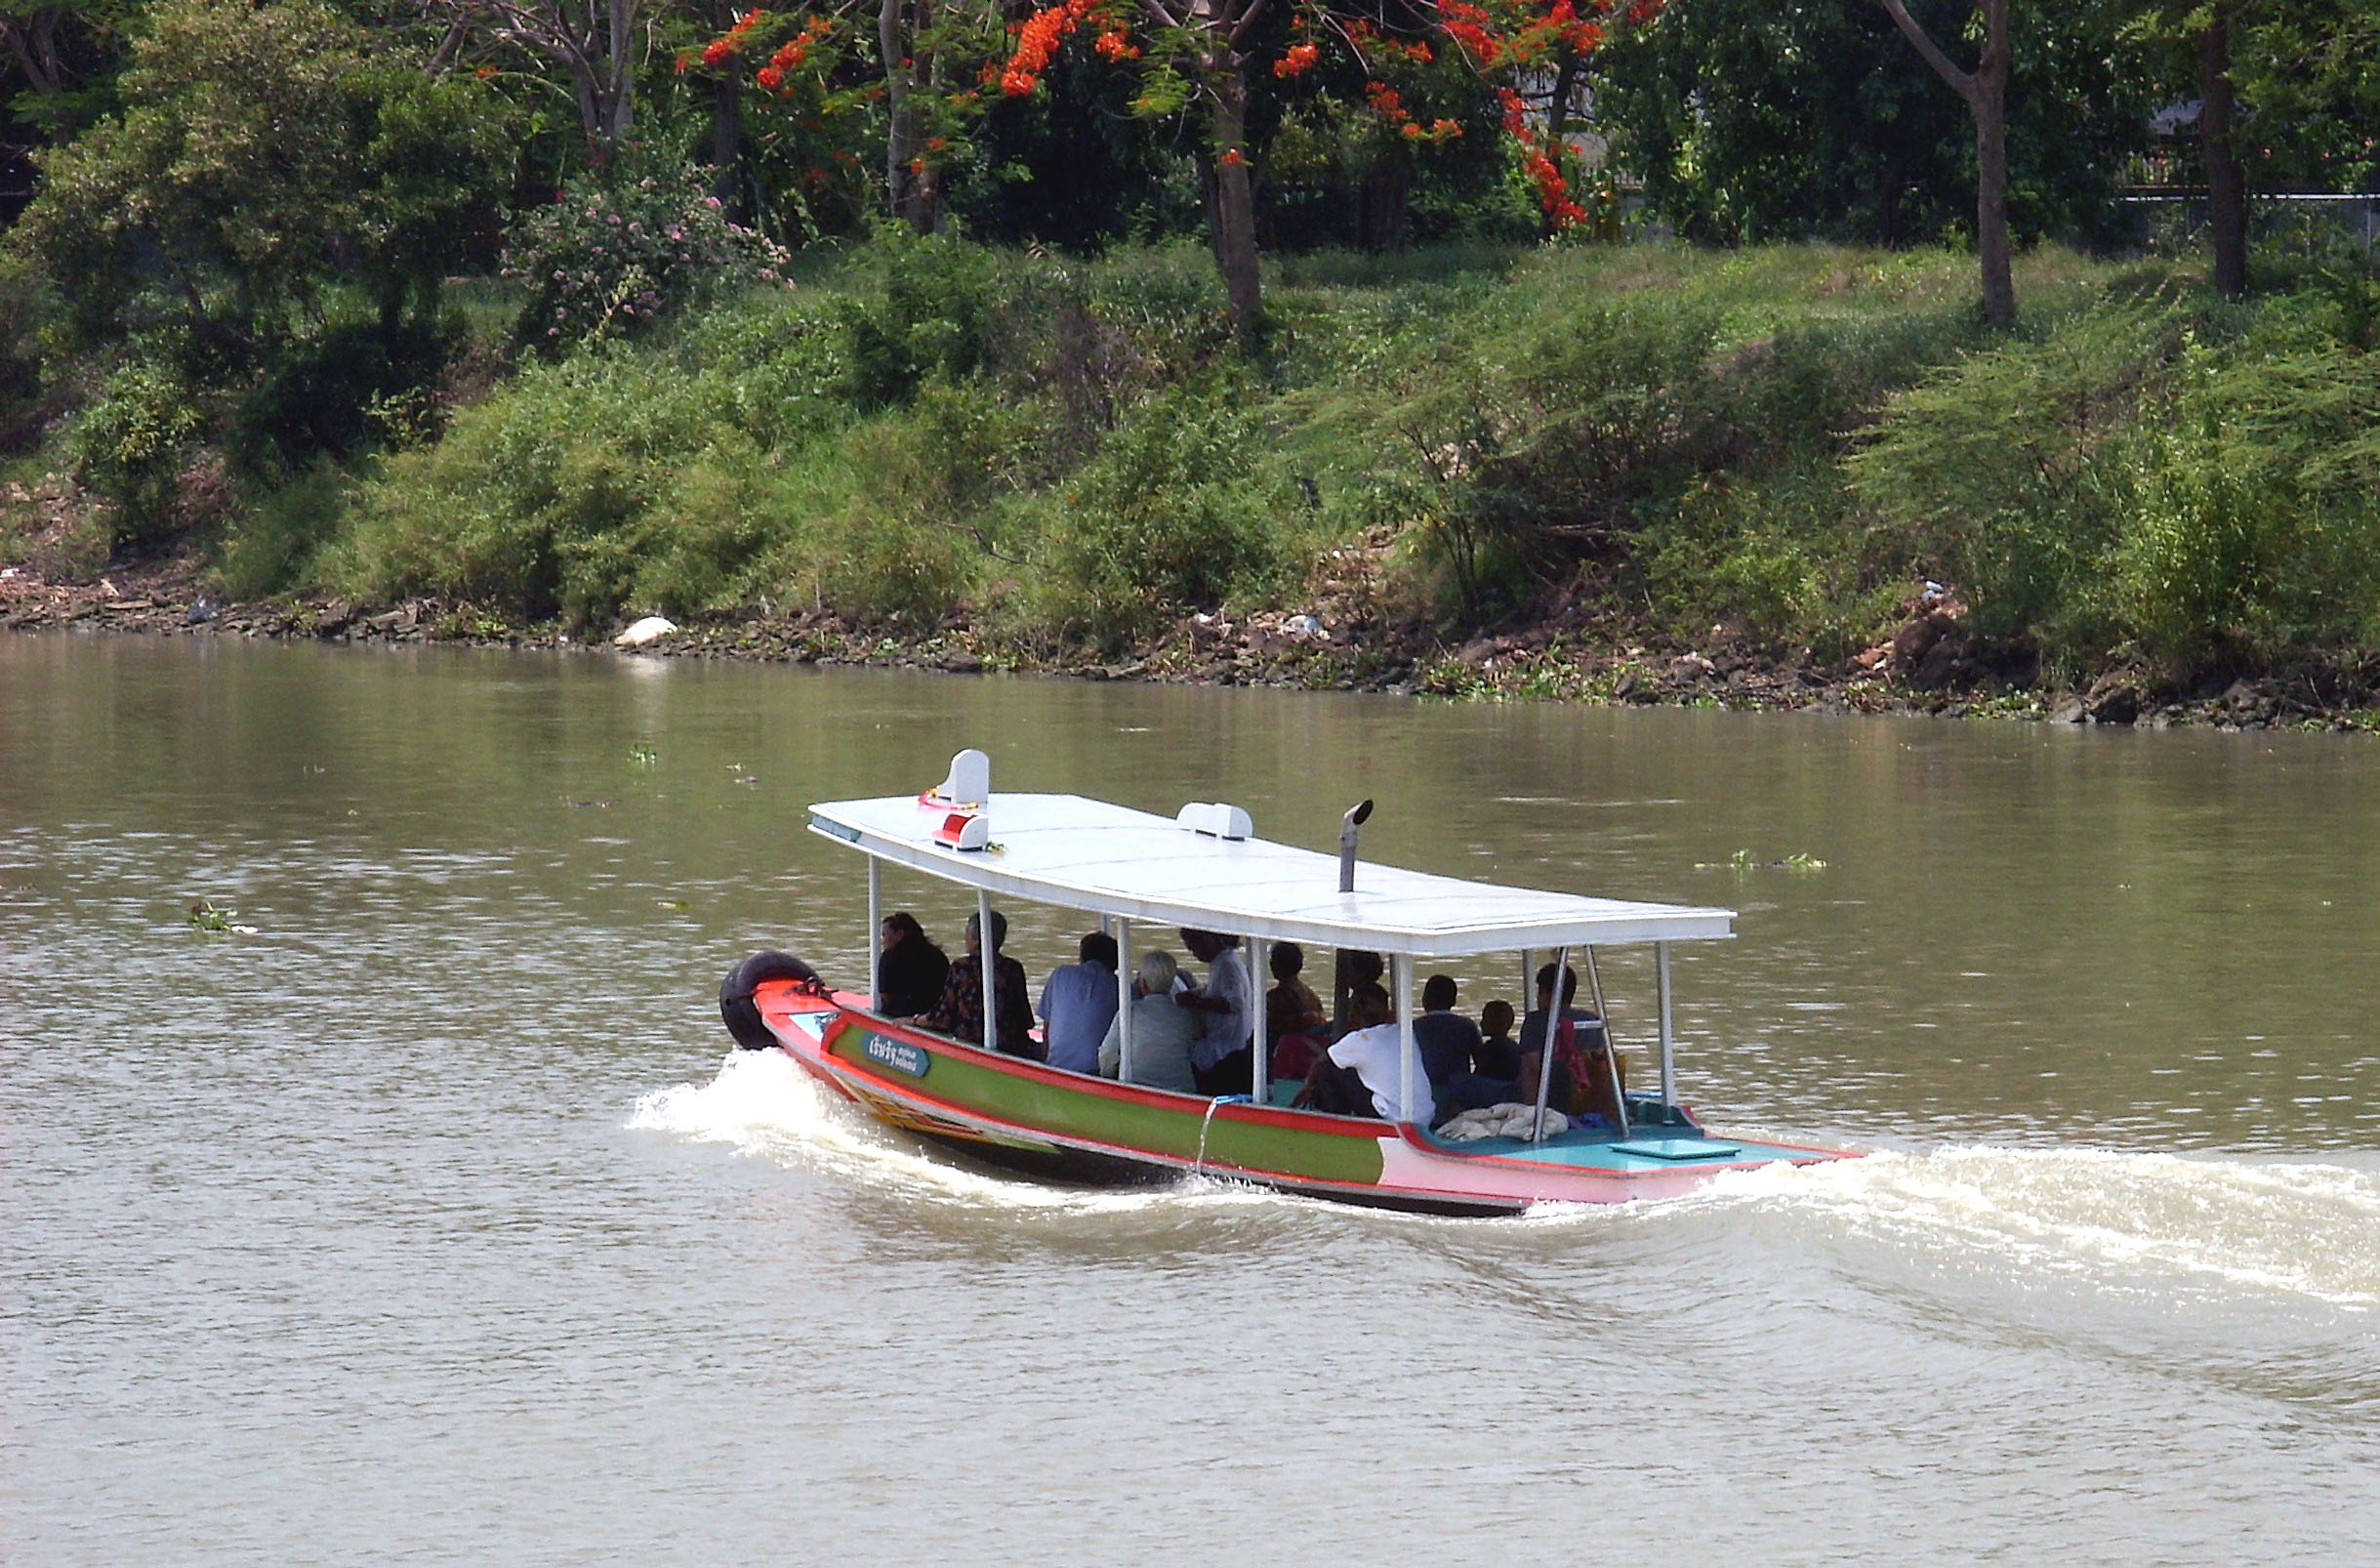 Ferry Boat on the Chaoi Phraya River, Boat, Chaophraya, Ferry, River, HQ Photo